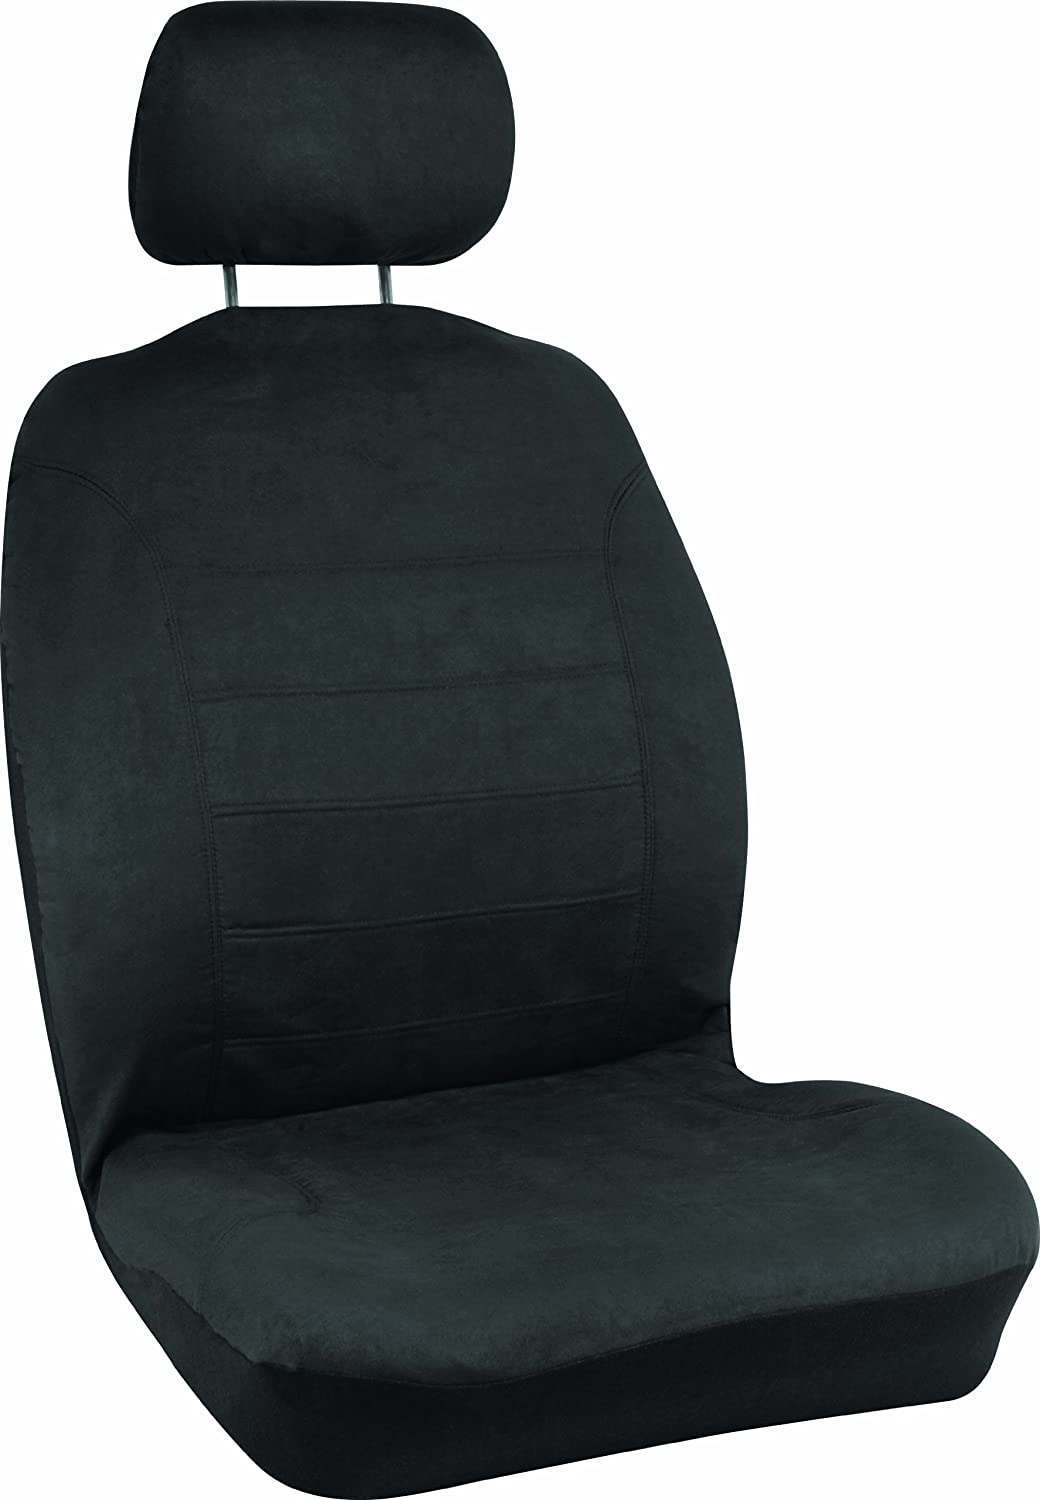 Bell Automotive 22-1-56226-8 Black Micro Suede Low-Back Bucket Seat Cover